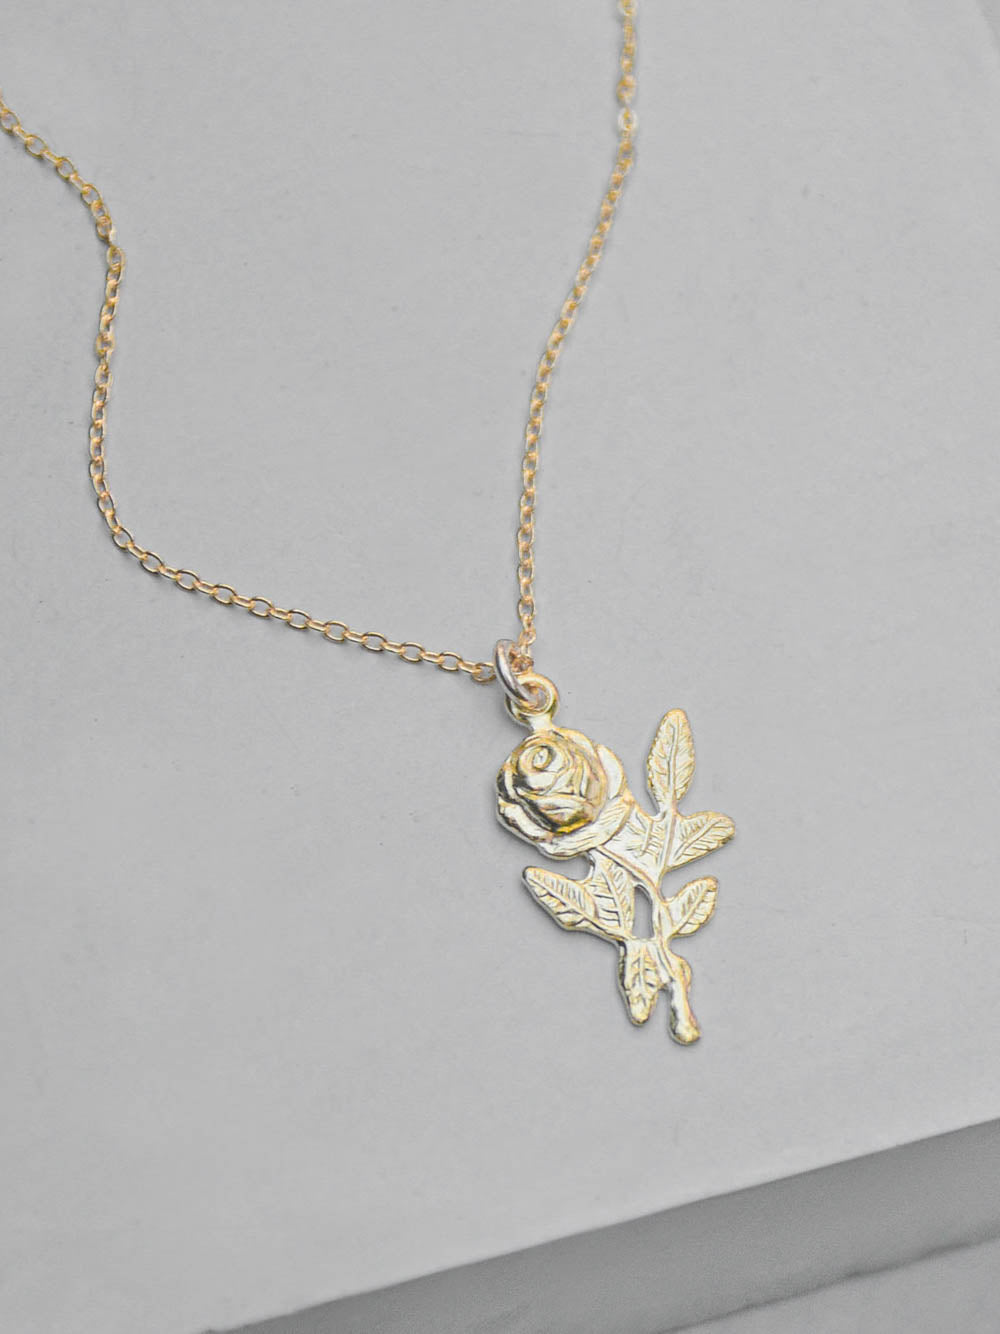 Gold Plated Rose Charm Necklace by The Faint Hearted Jewelry